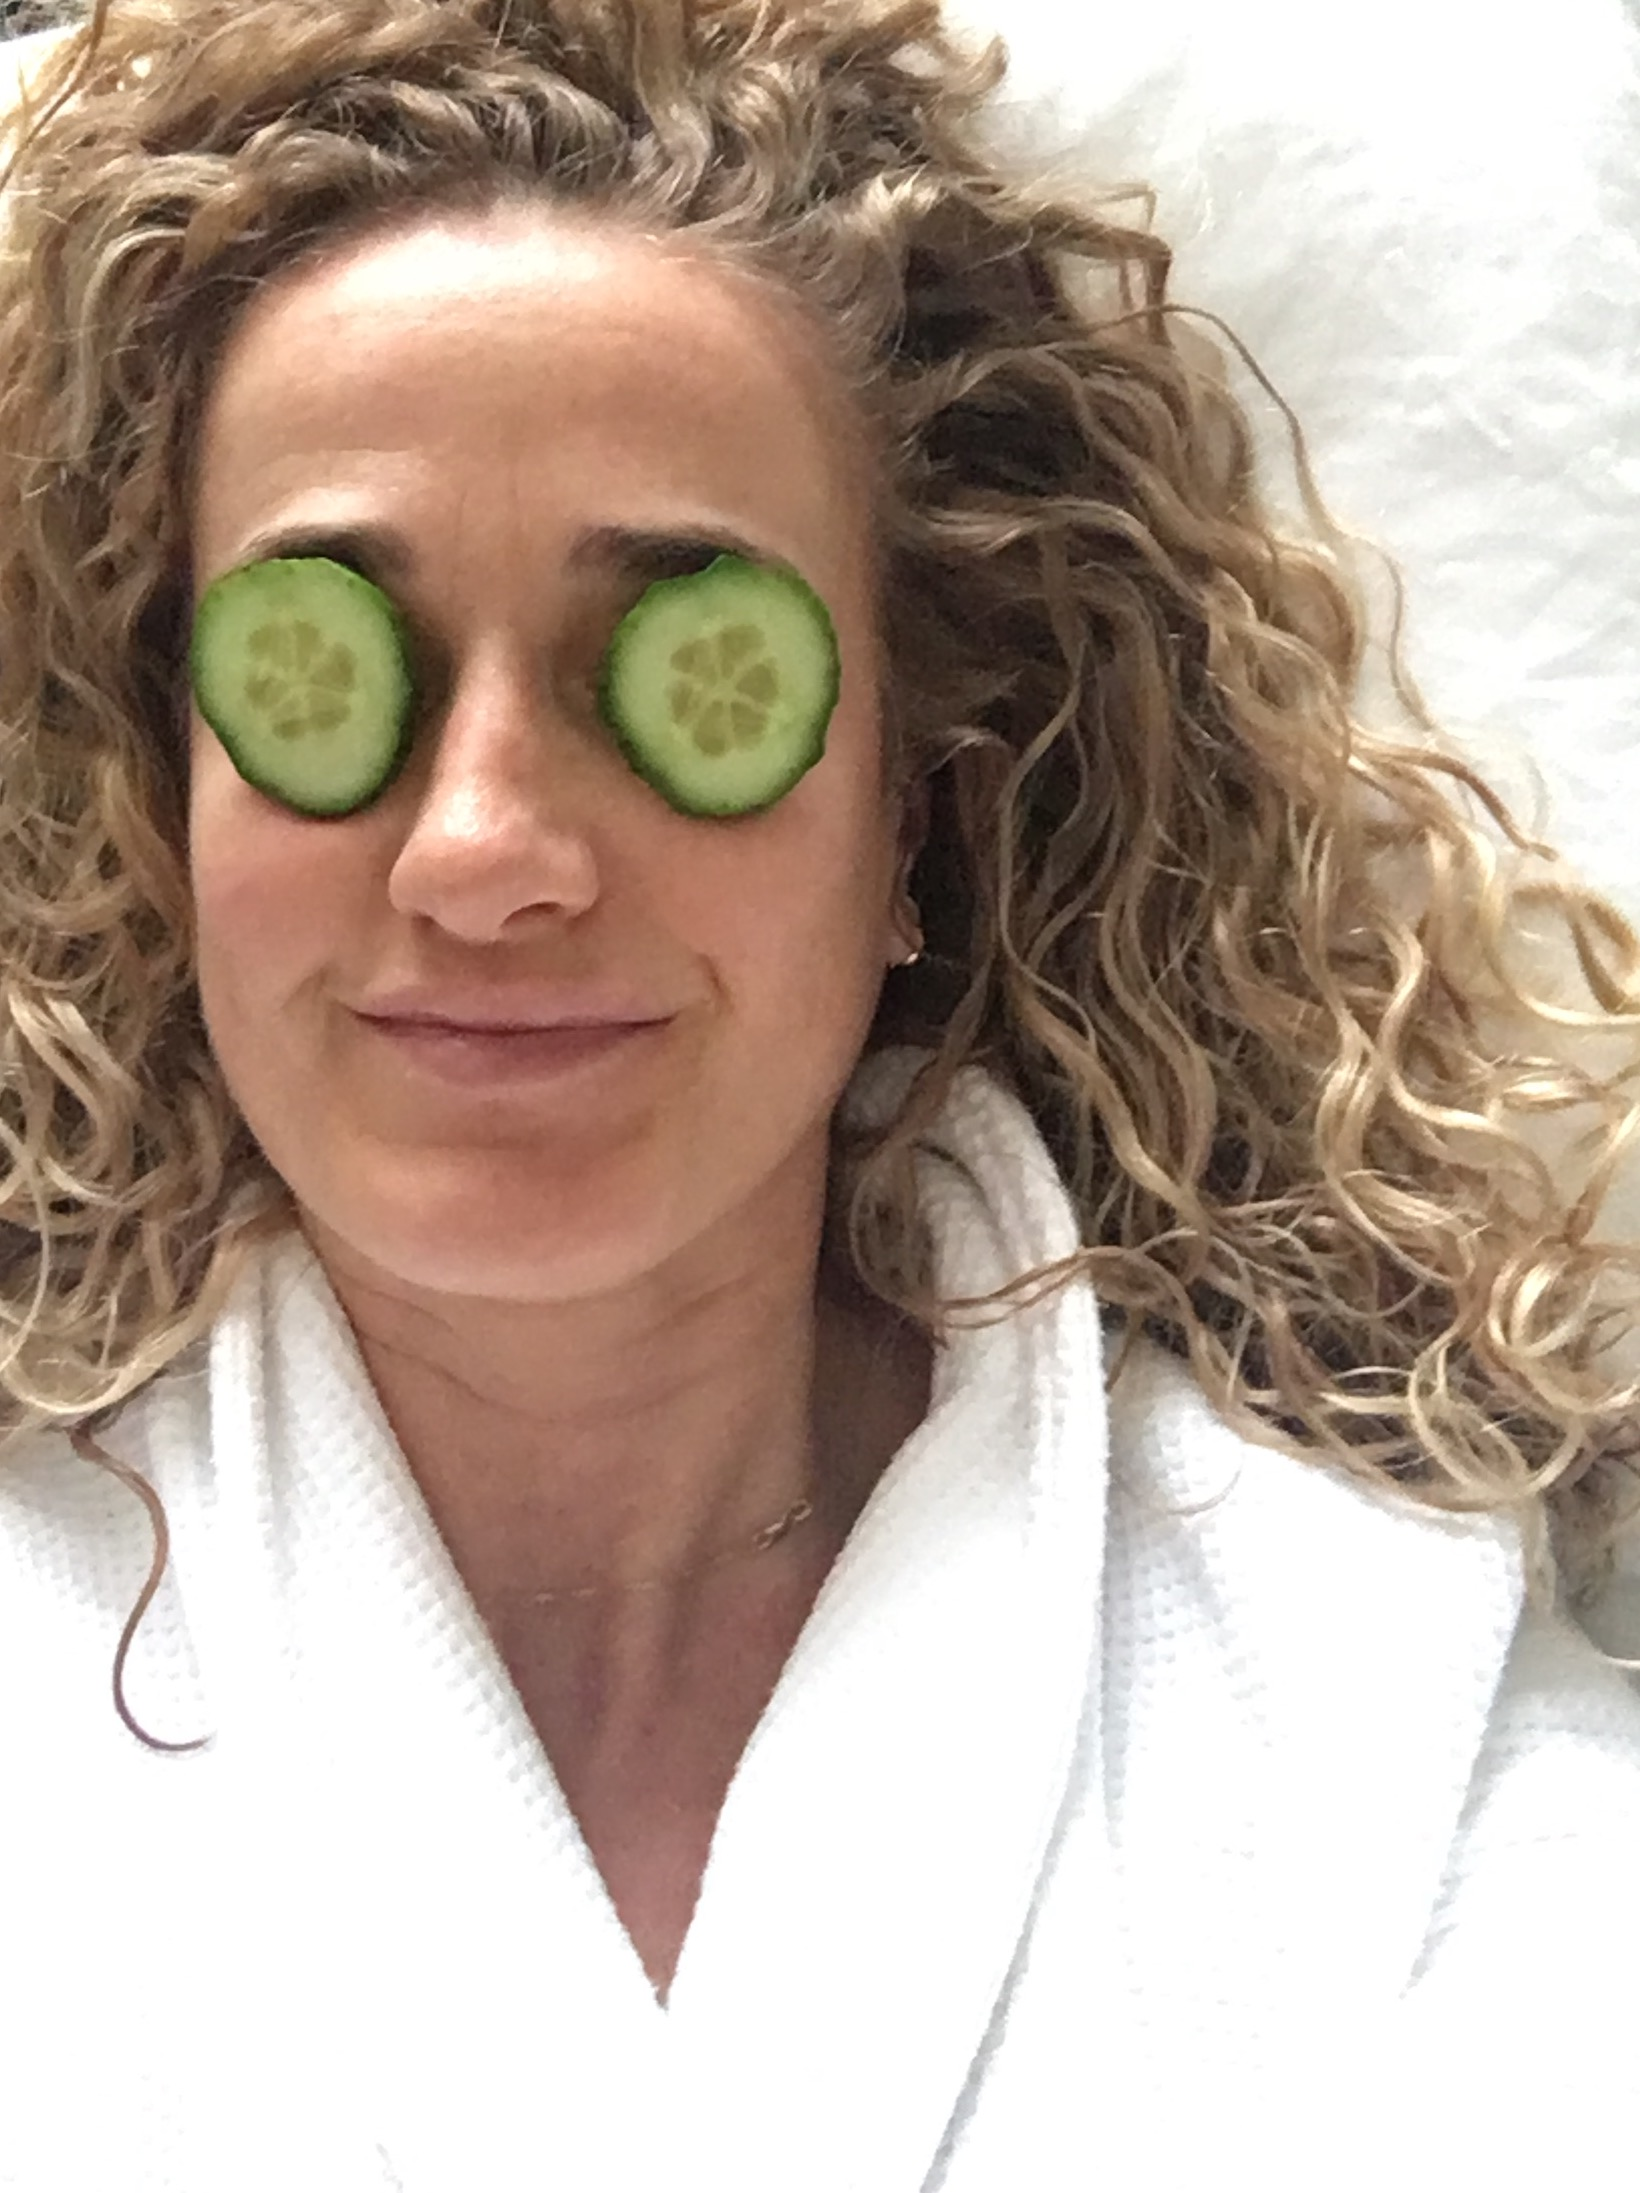 7 PUFFY EYE REMEDIES - The Grown Up Edit - Cucumber.jpg